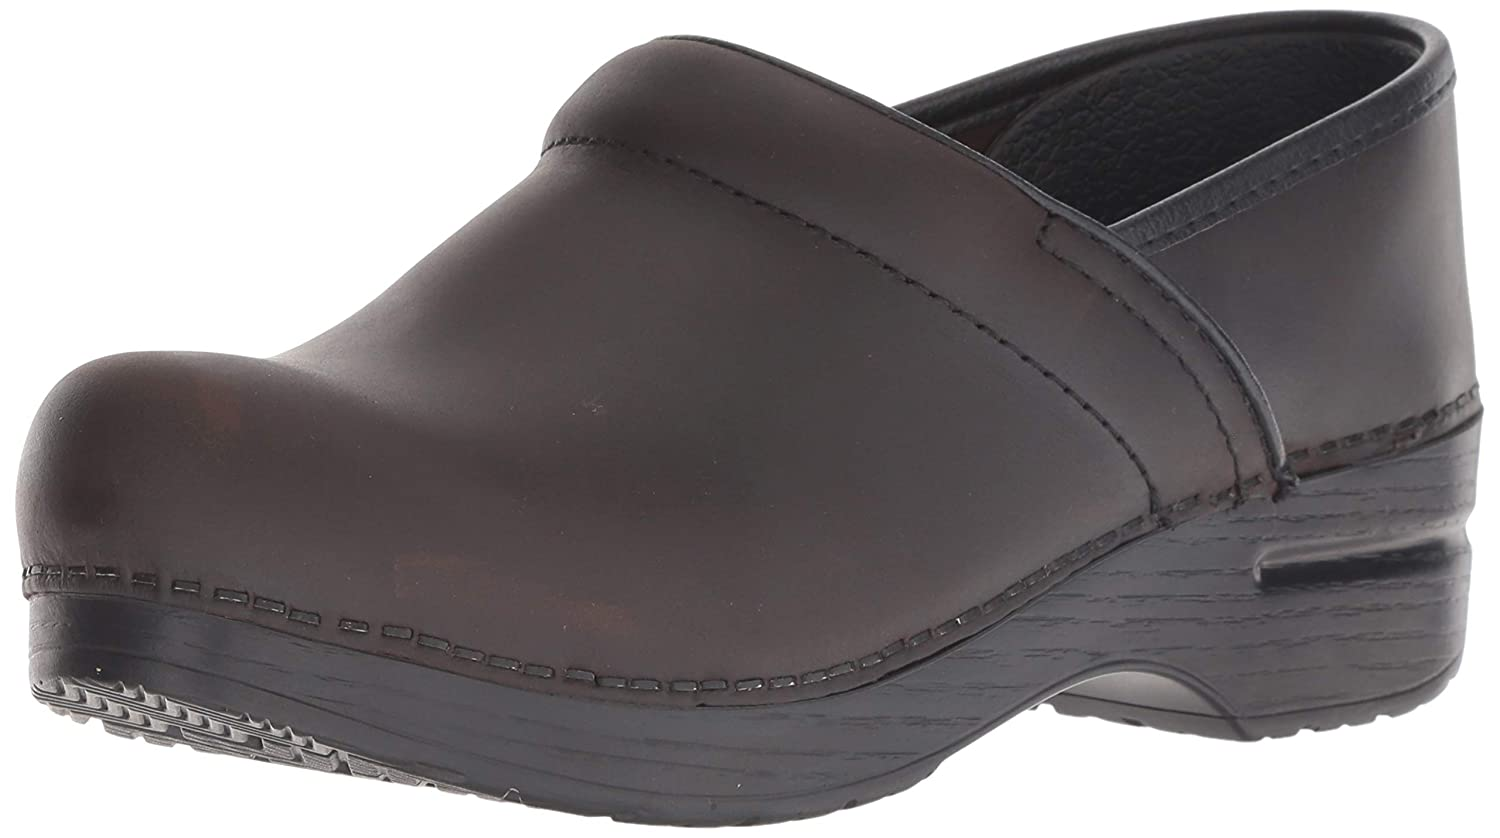 Amazon.com  Dansko Women s Professional Mule  Shoes d2634a9331